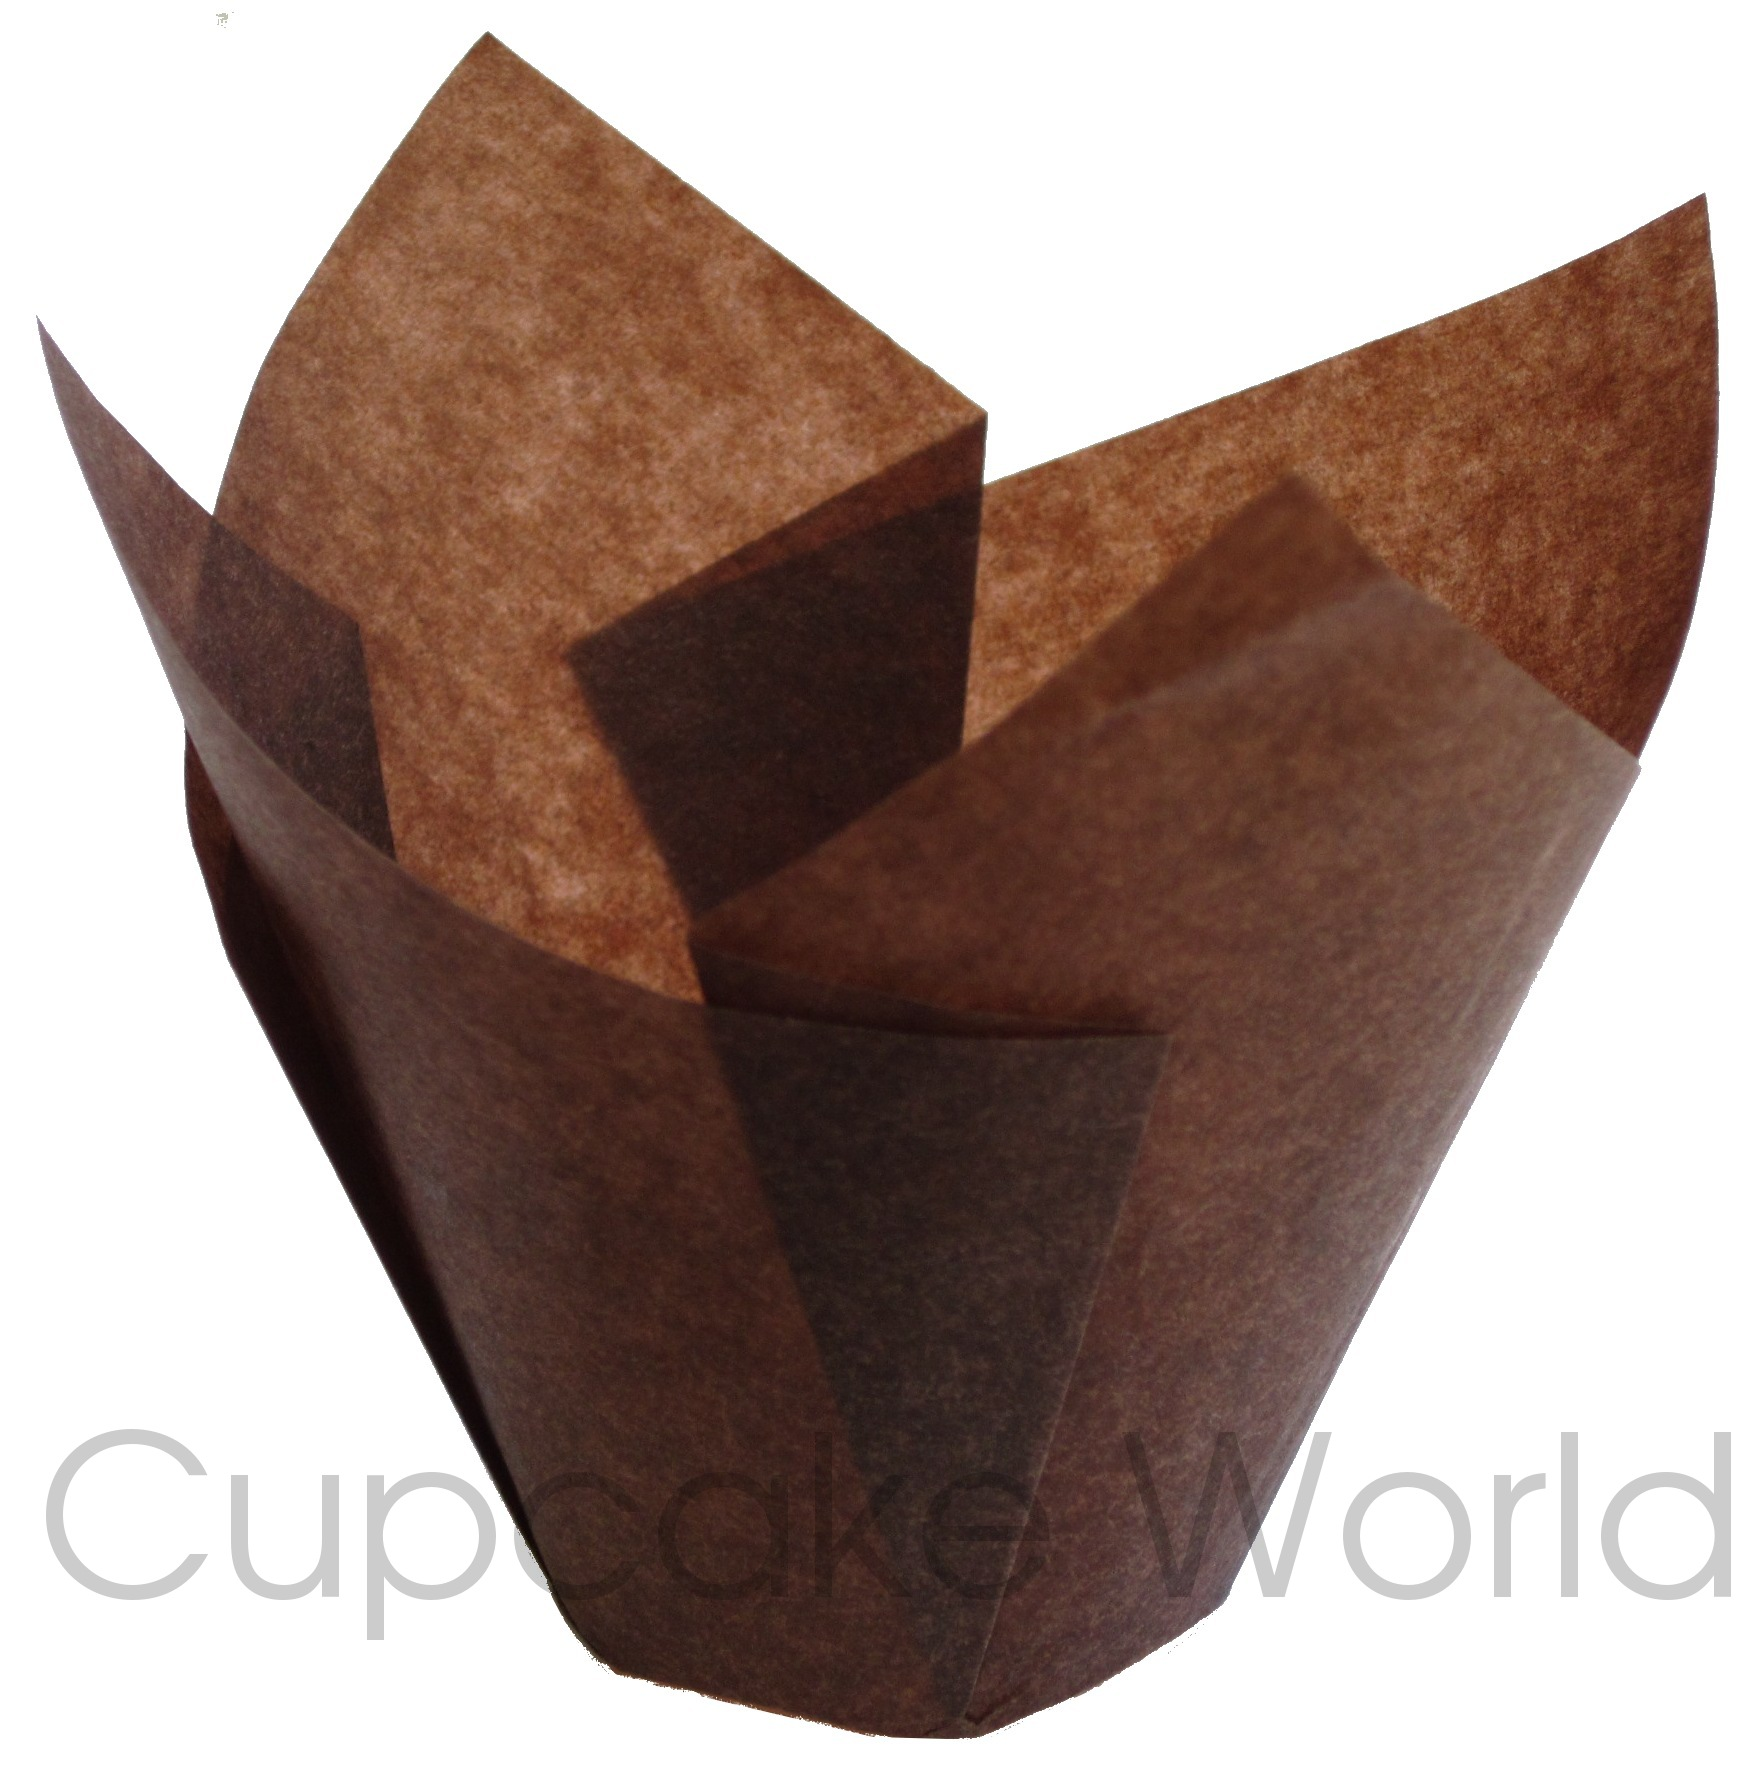 100PC CAFE STYLE BROWN PAPER CUPCAKE MUFFIN WRAPS MINI - Click Image to Close